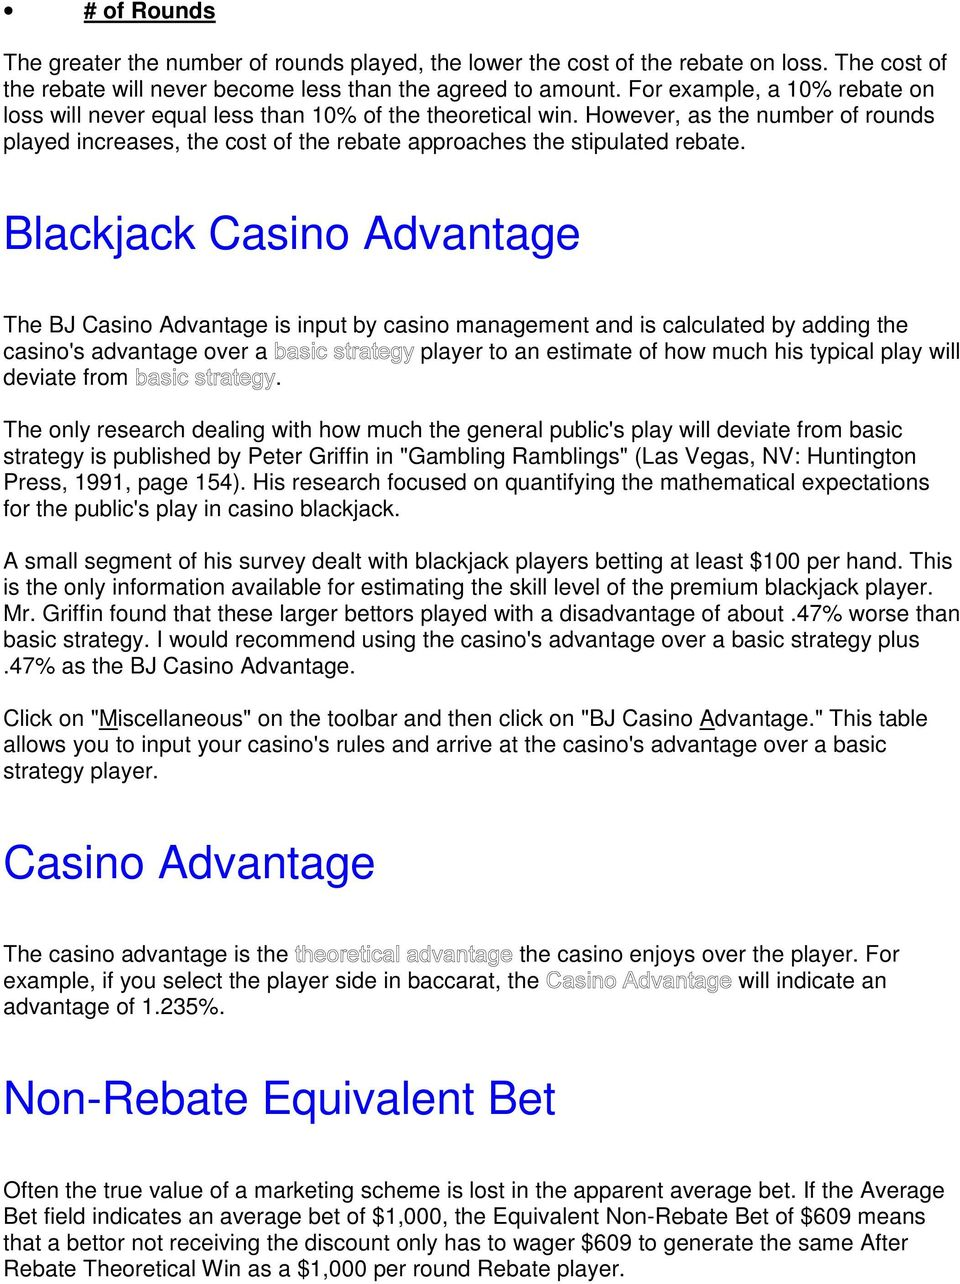 Blackjack Casino Advantage The BJ Casino Advantage is input by casino management and is calculated by adding the casino's advantage over a player to an estimate of how much his typical play will